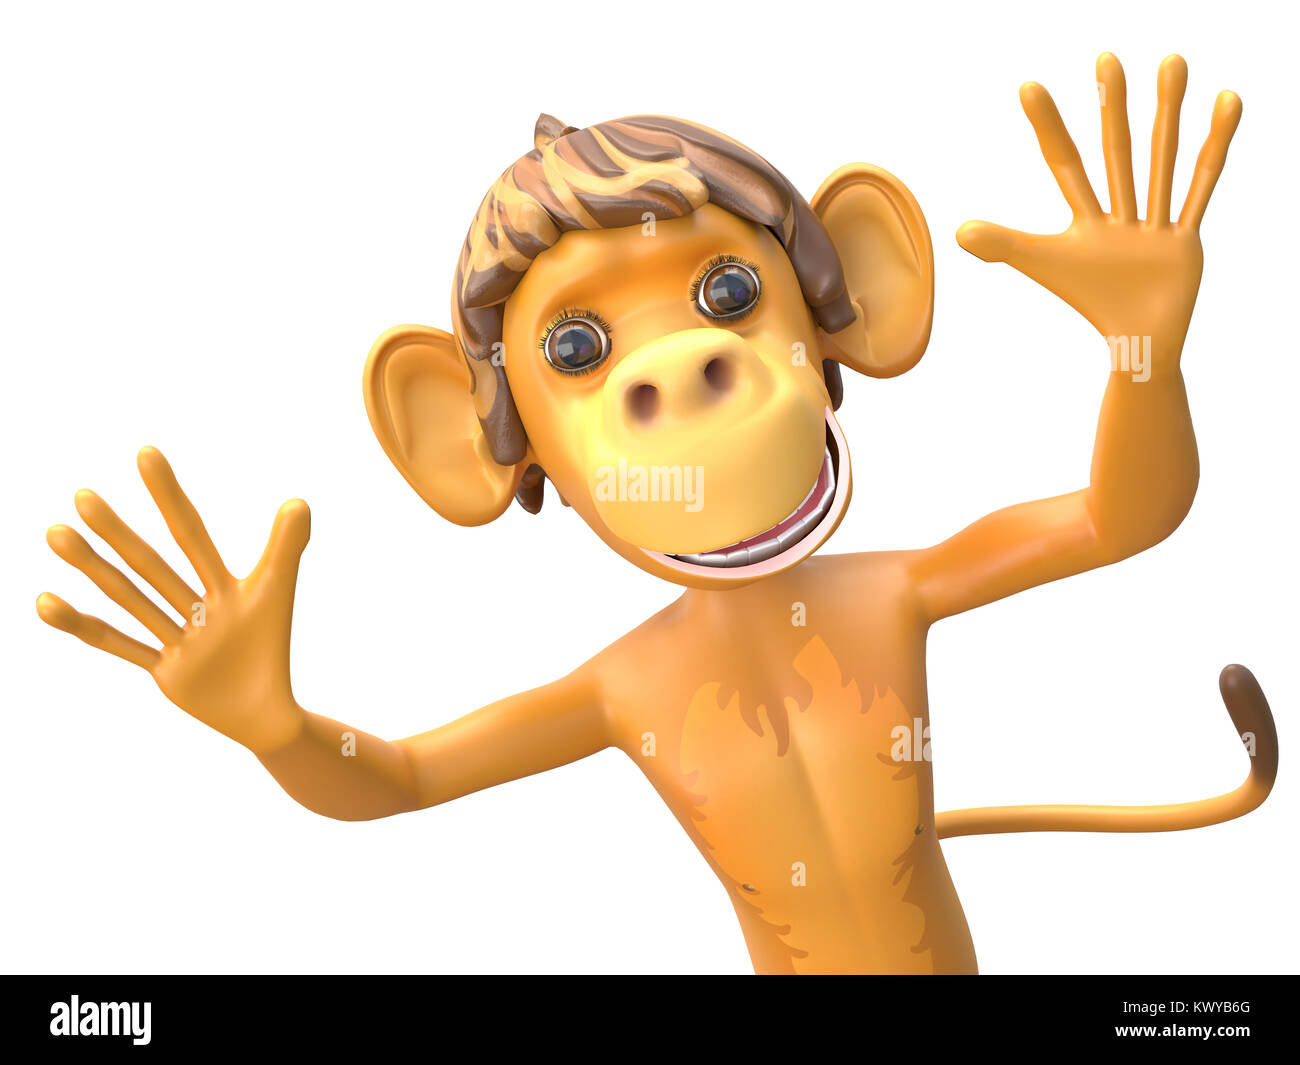 3D Illustration of a Jolly Monkey on White Background - Stock Image